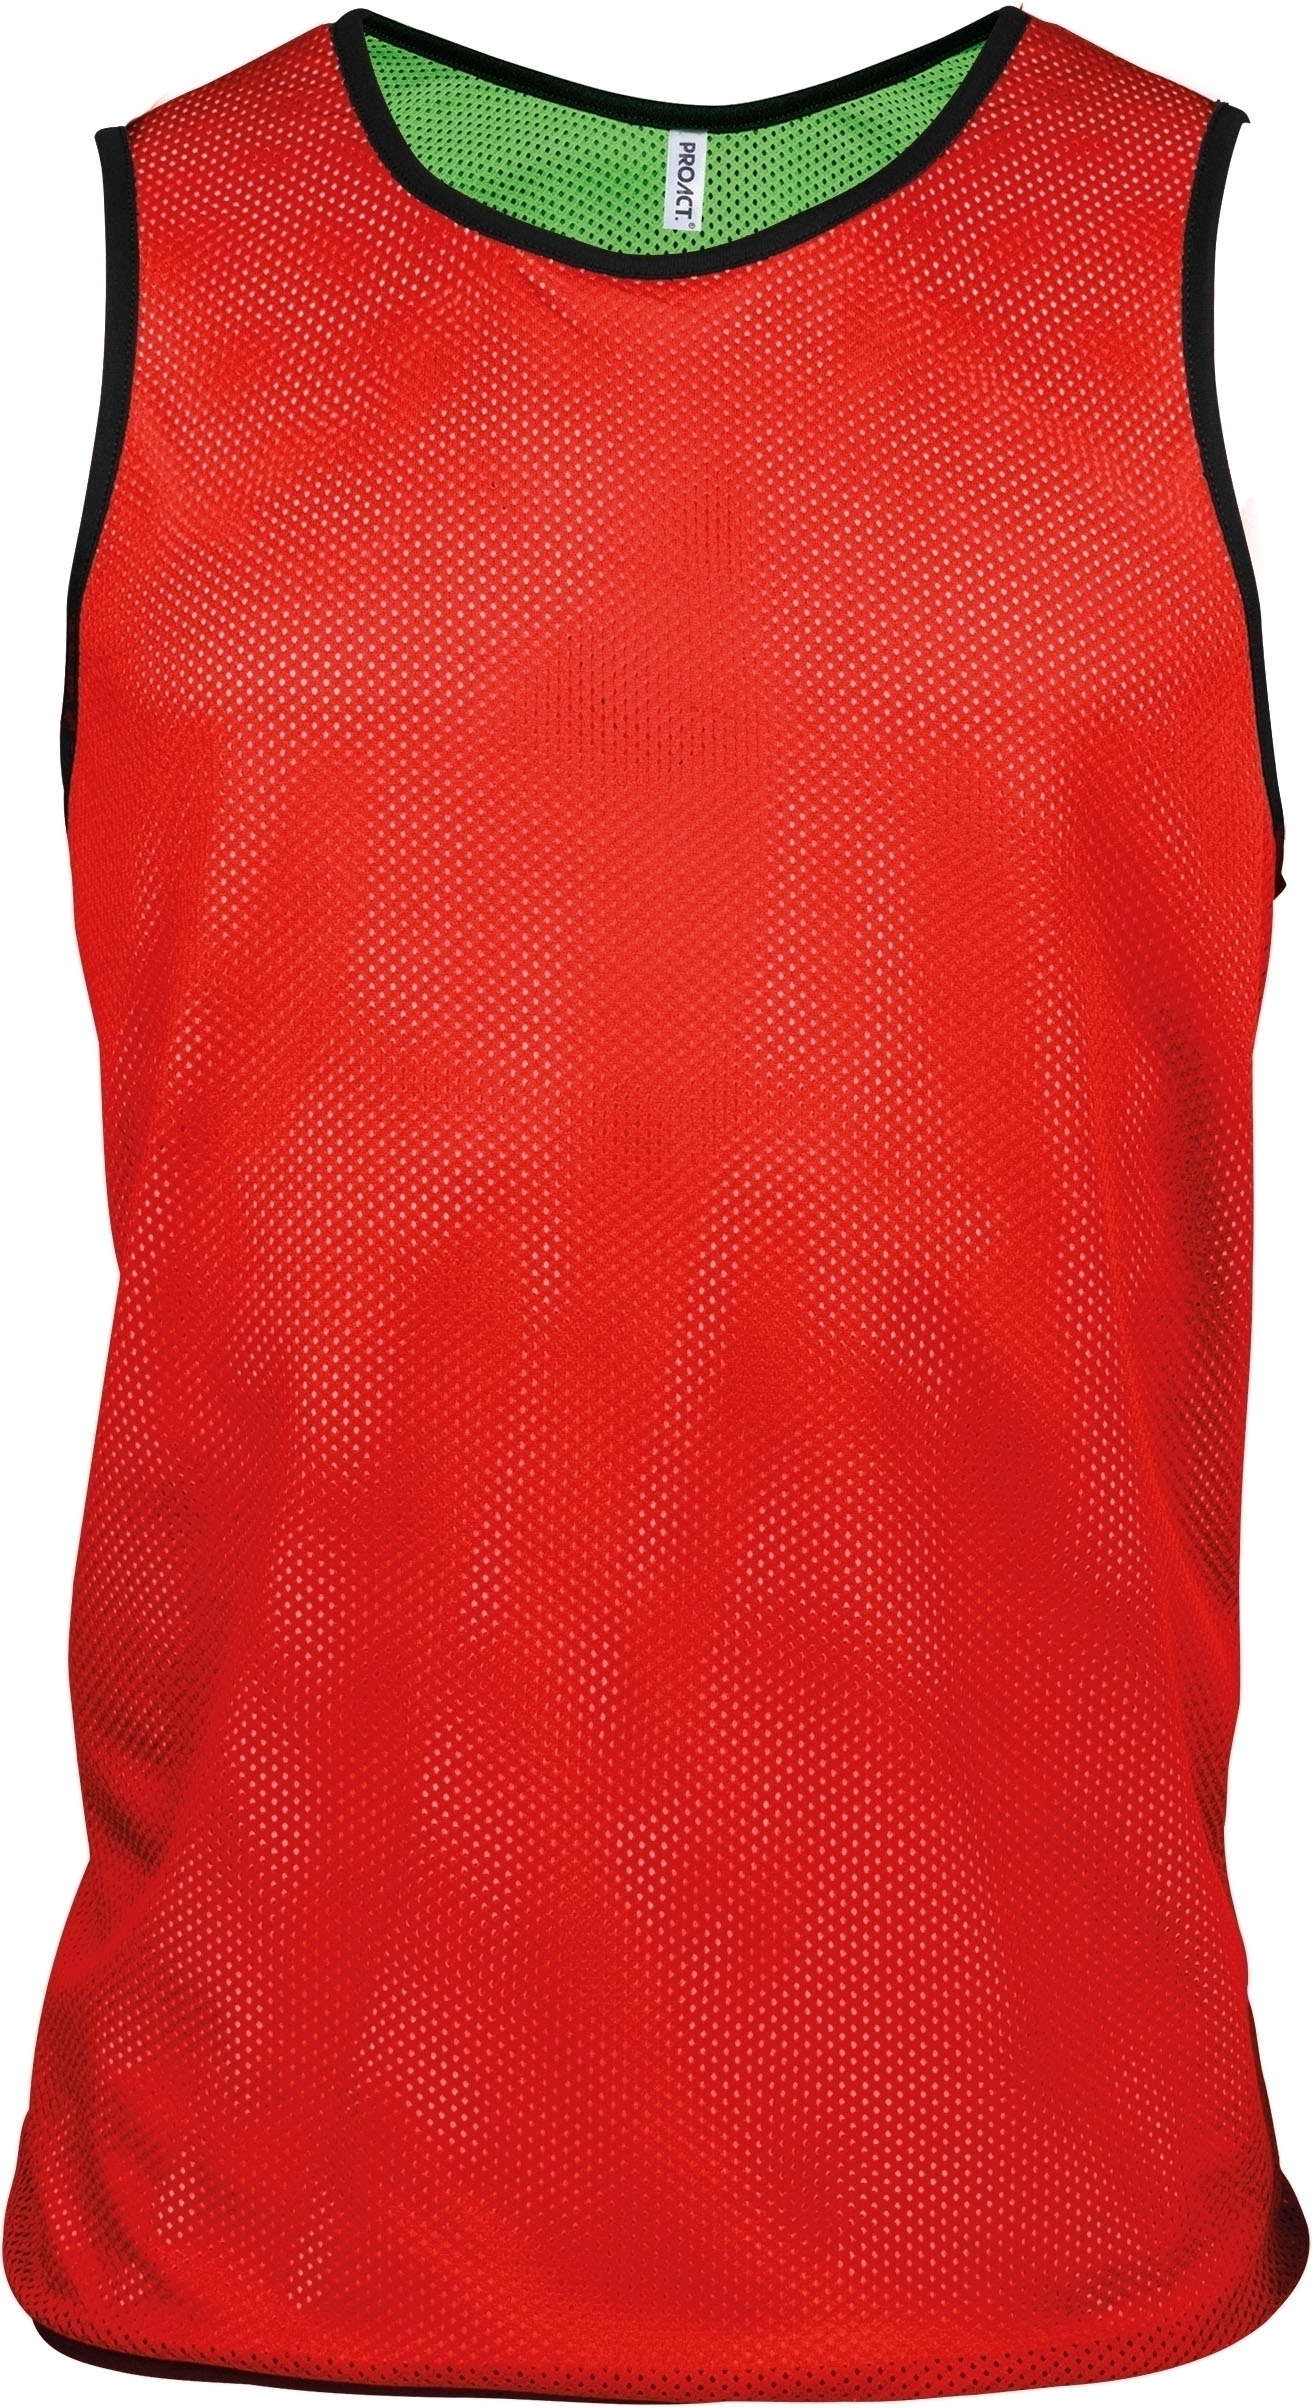 CHASUBLE RÉVERSIBLE MULTISPORTS ADULTE ET ENFANT Sporty Red / Fluorescent Green Rouge